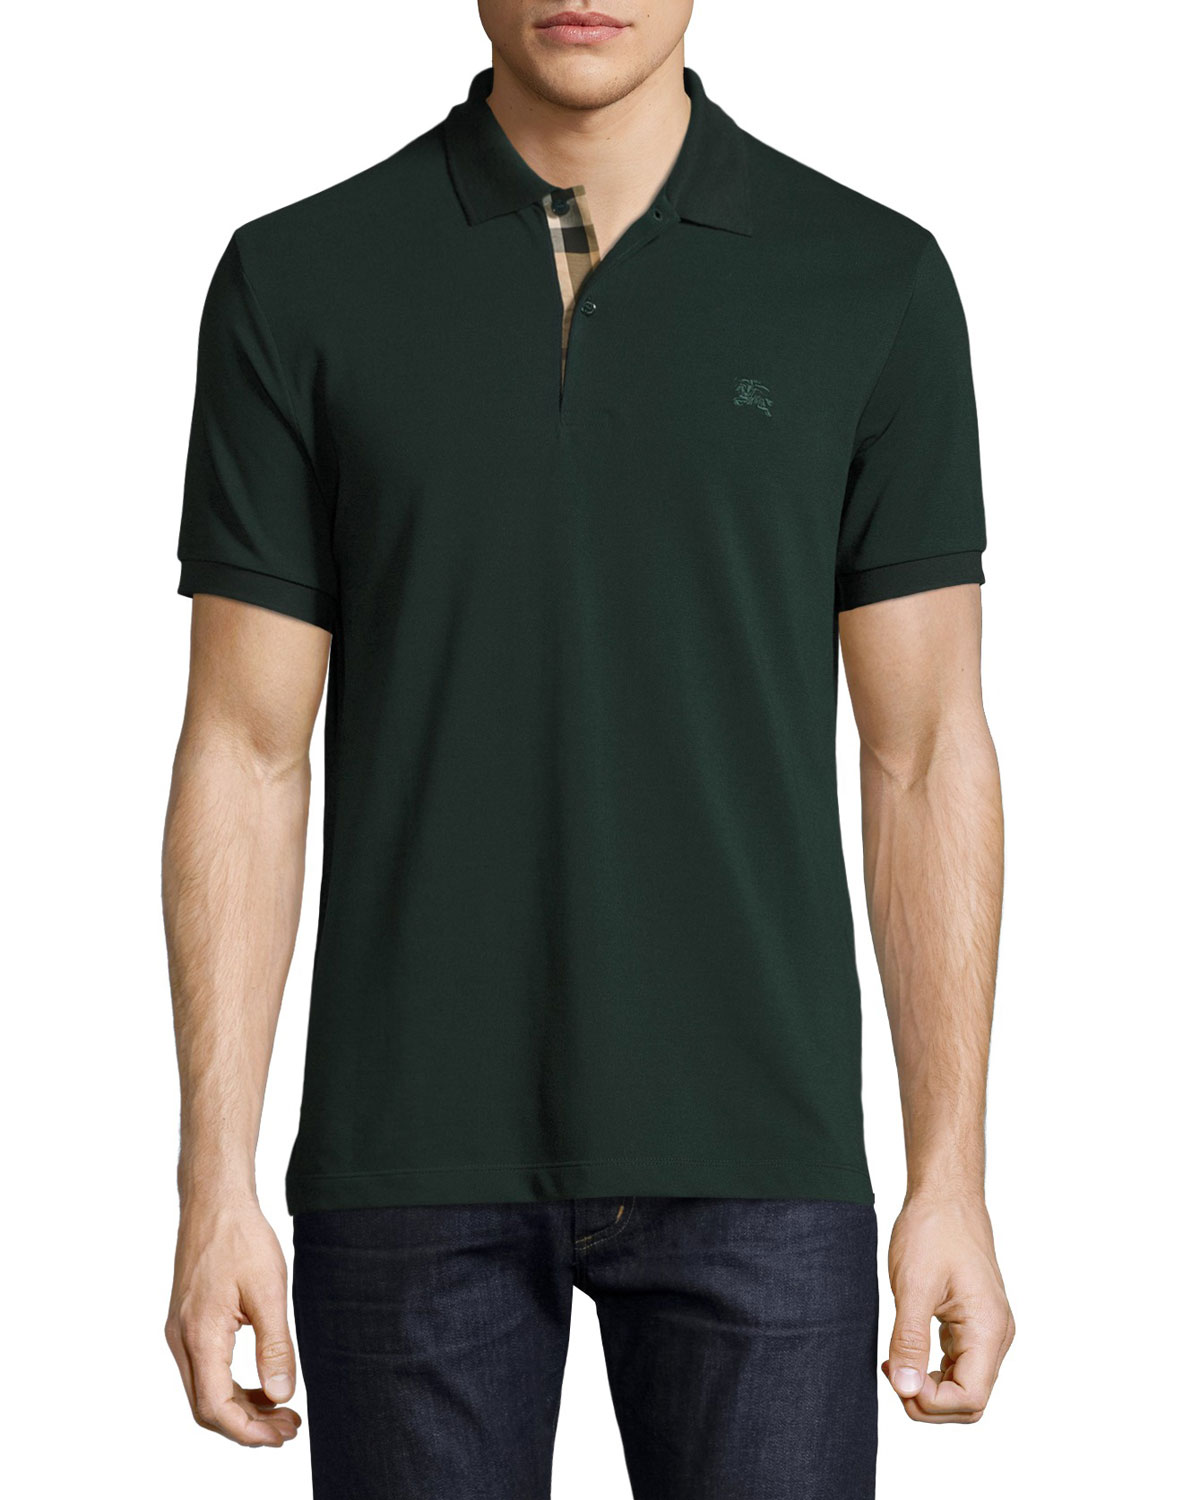 Short-Sleeve Oxford Polo Shirt, Racing Green